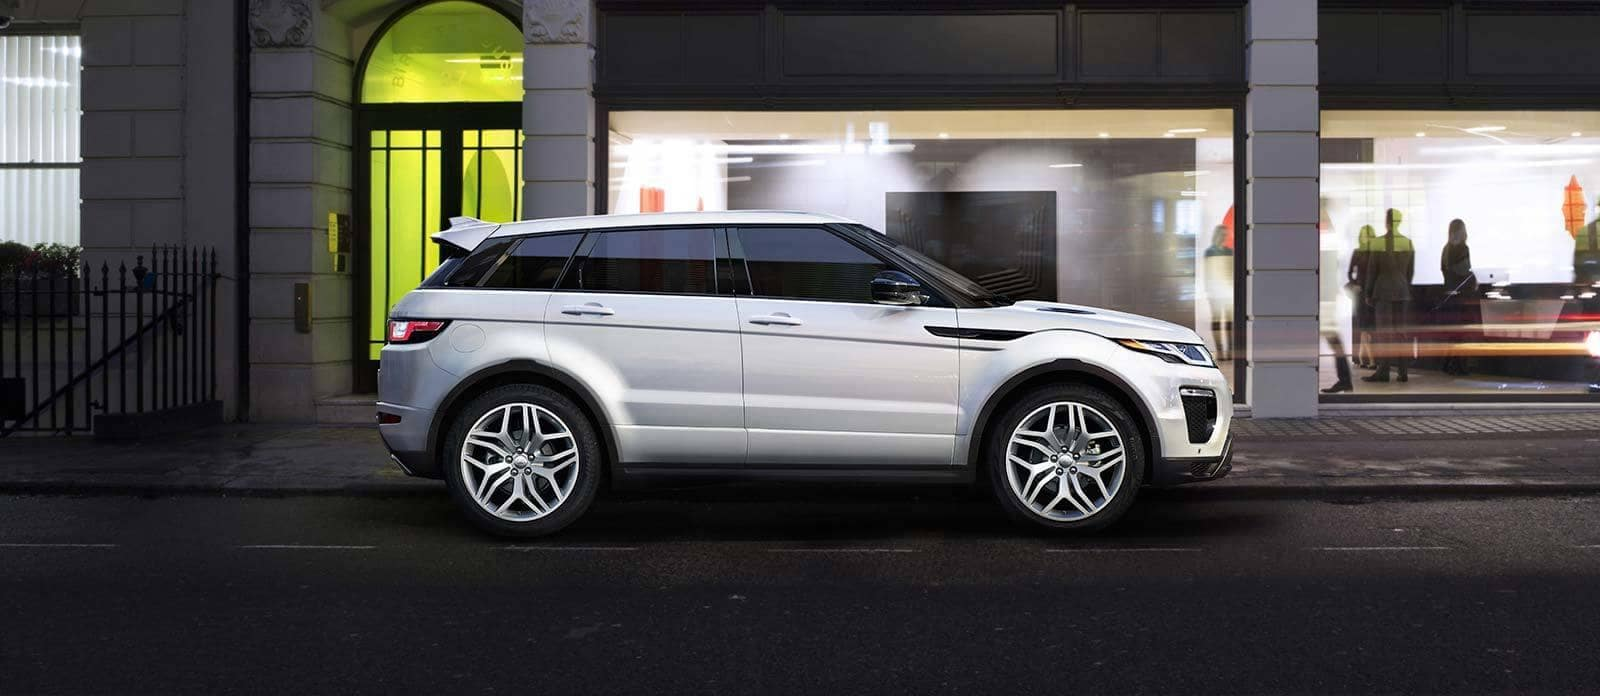 in offer special landrover deal md annapolis range annapols lease land evoque rover deals